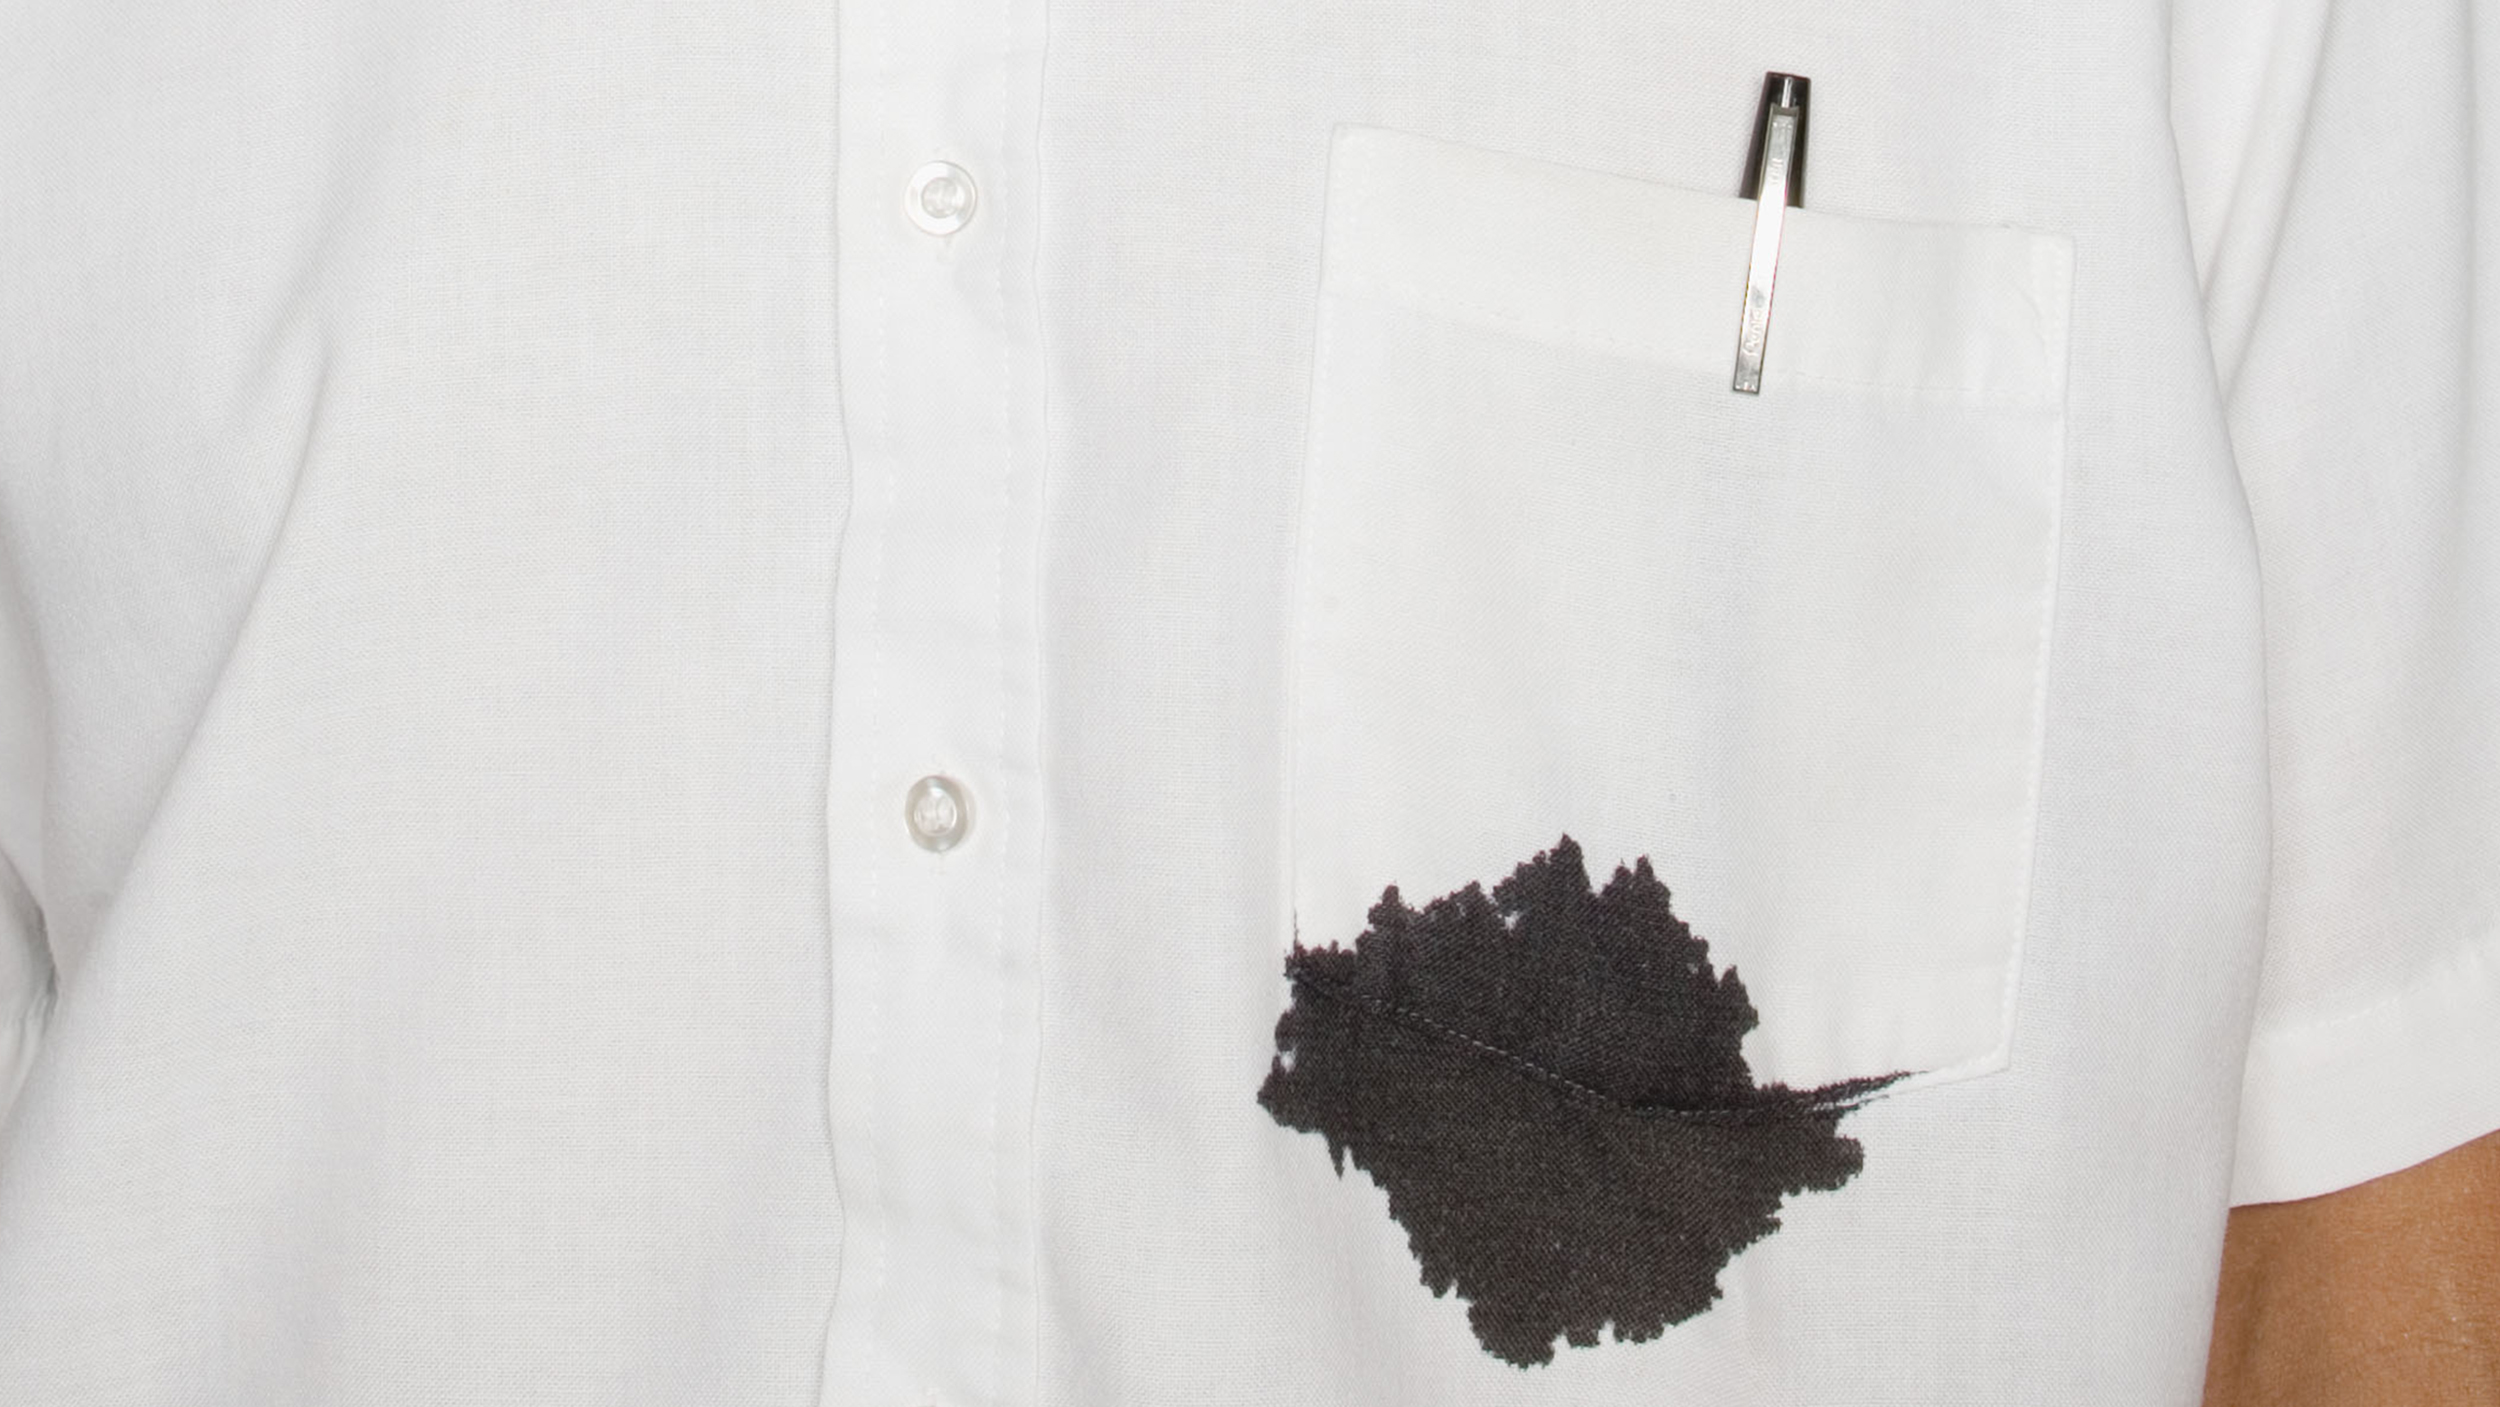 How to treat ink stains on your clothes and carpet for Remove pen stain from shirt